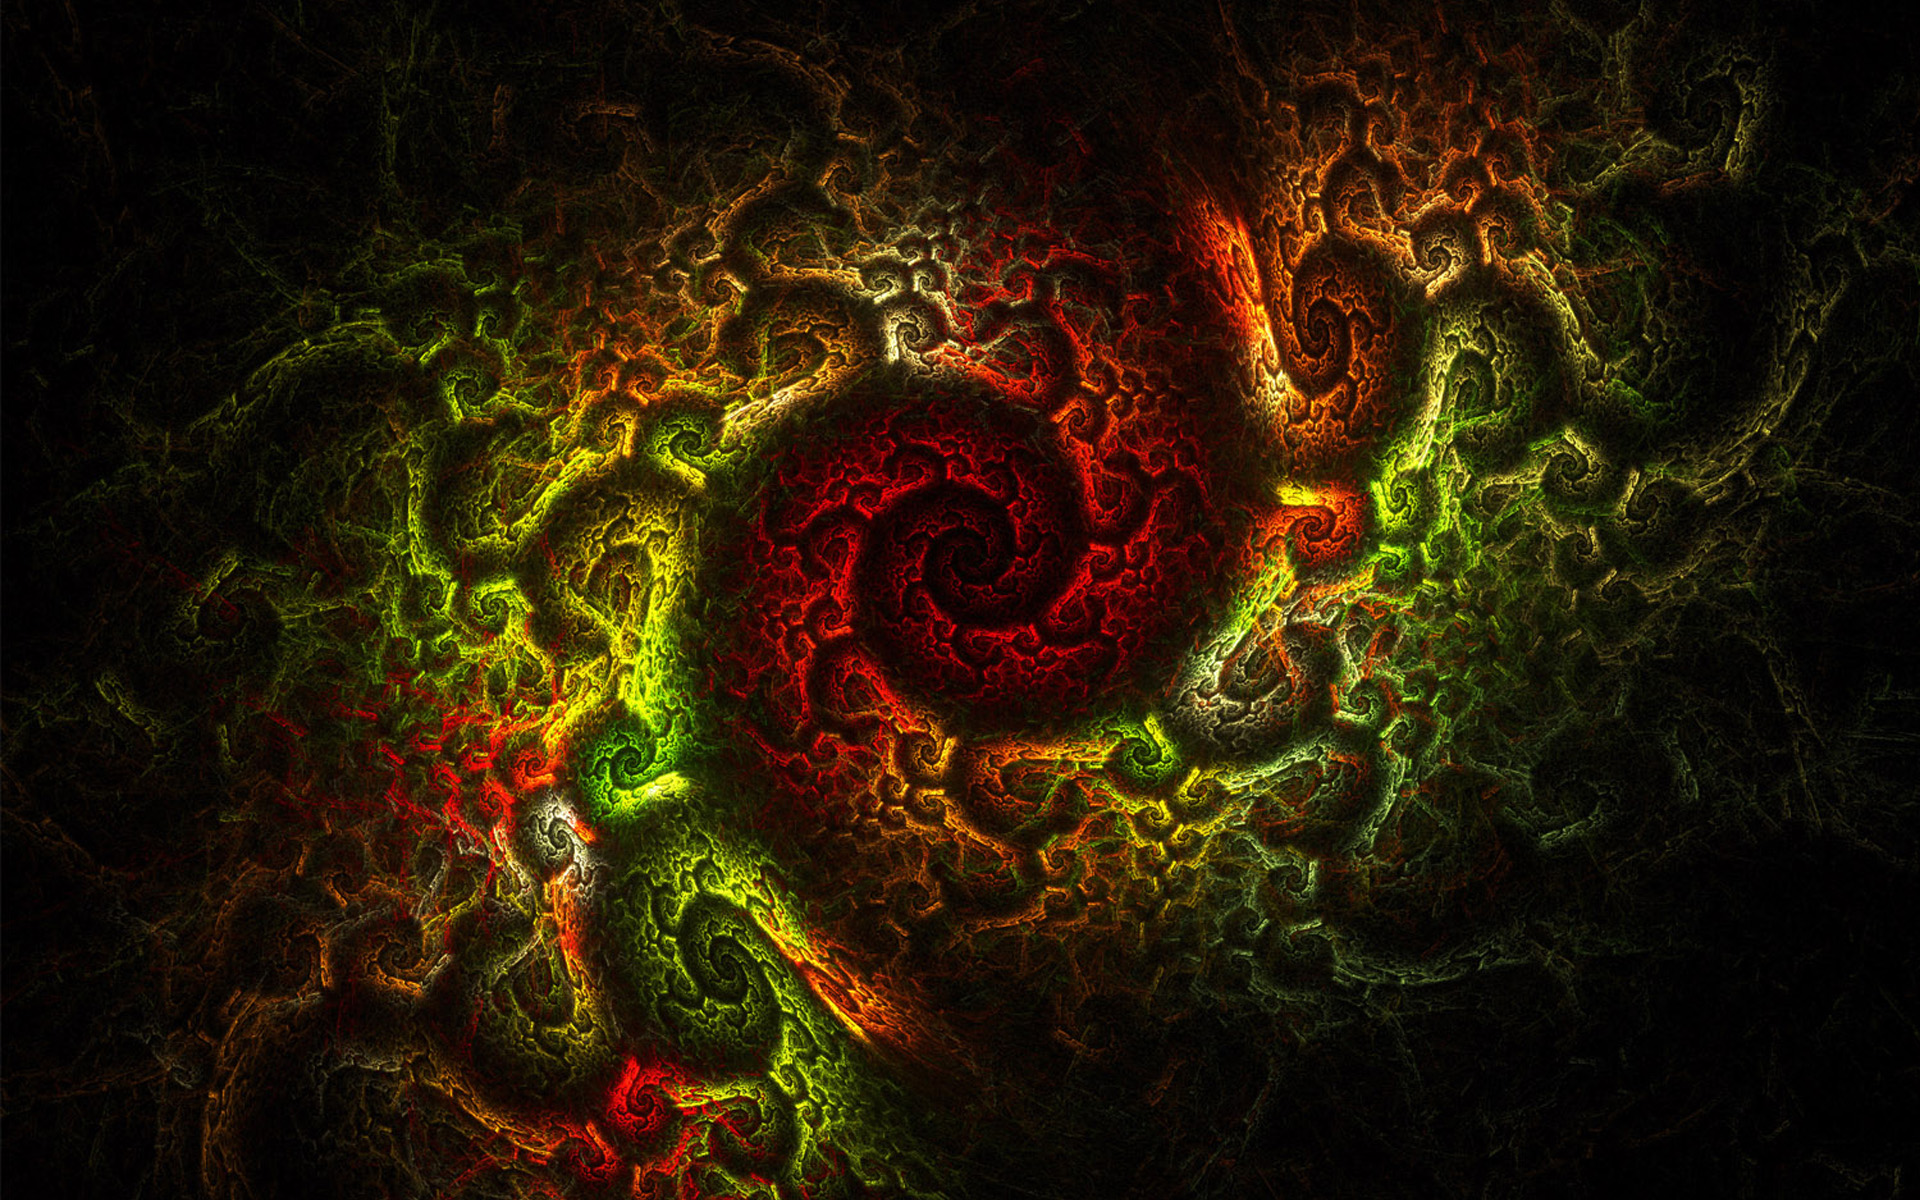 Cool Abstract HD Wallpaper - WallpaperSafari